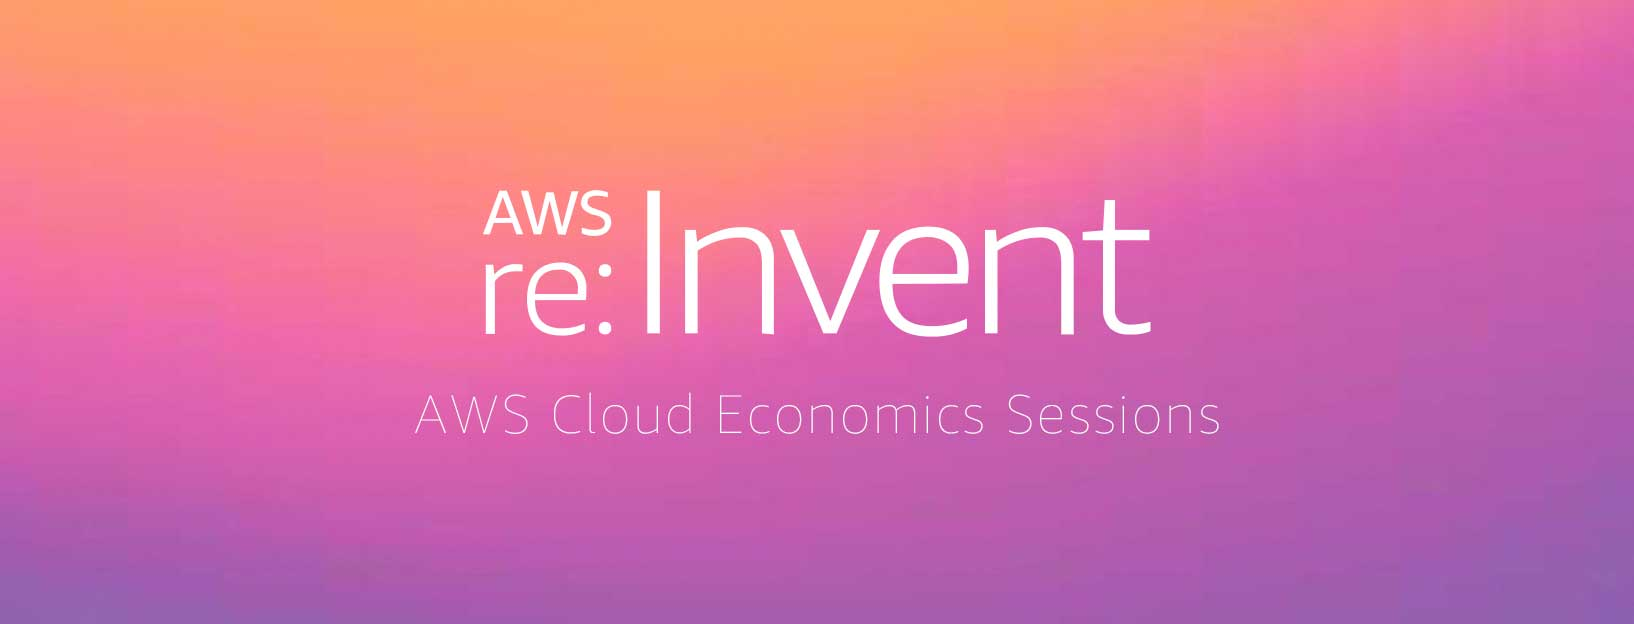 AWS Cloud Economics Sessions